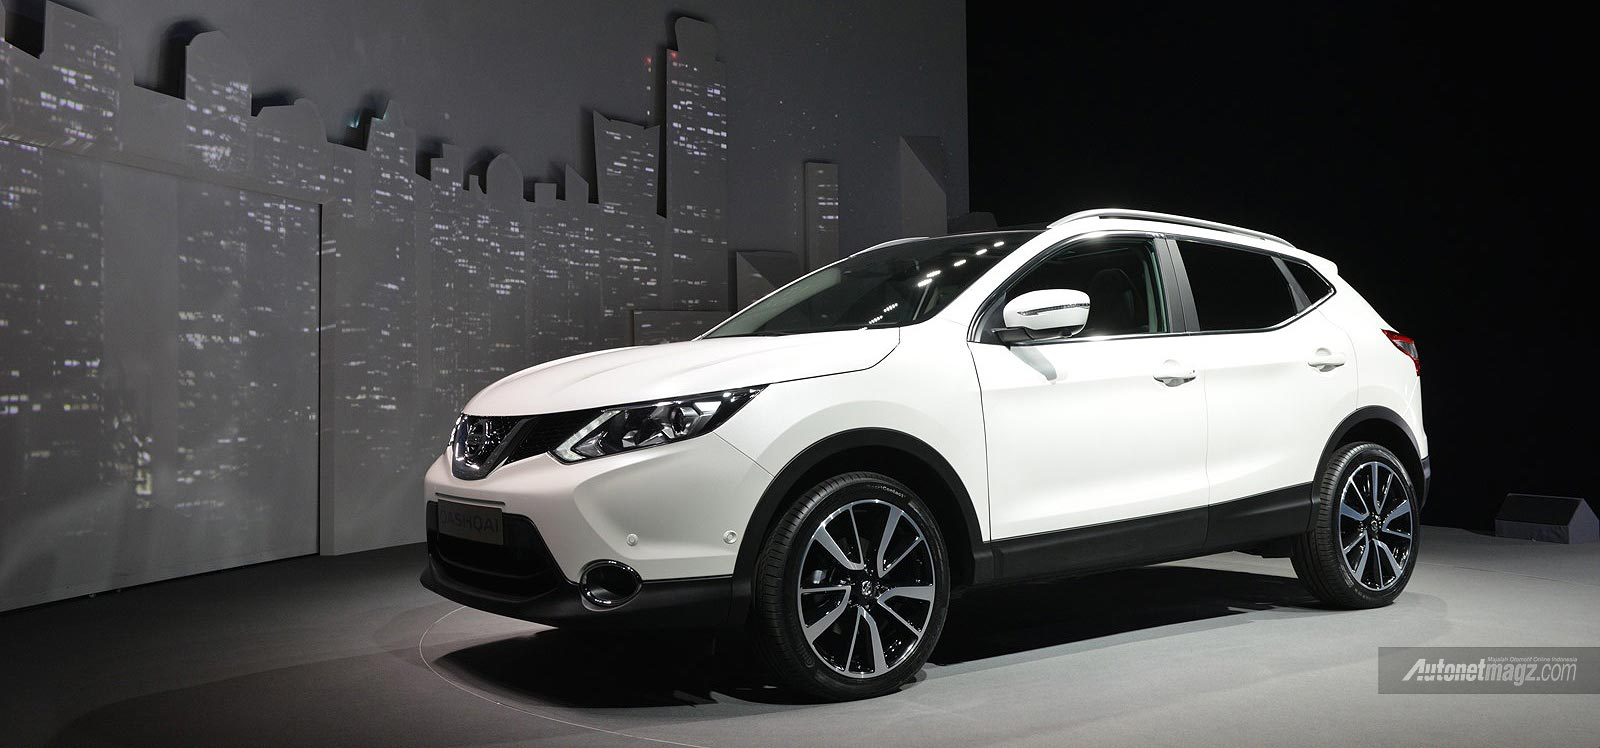 All-new Nissan Qashqai 2014